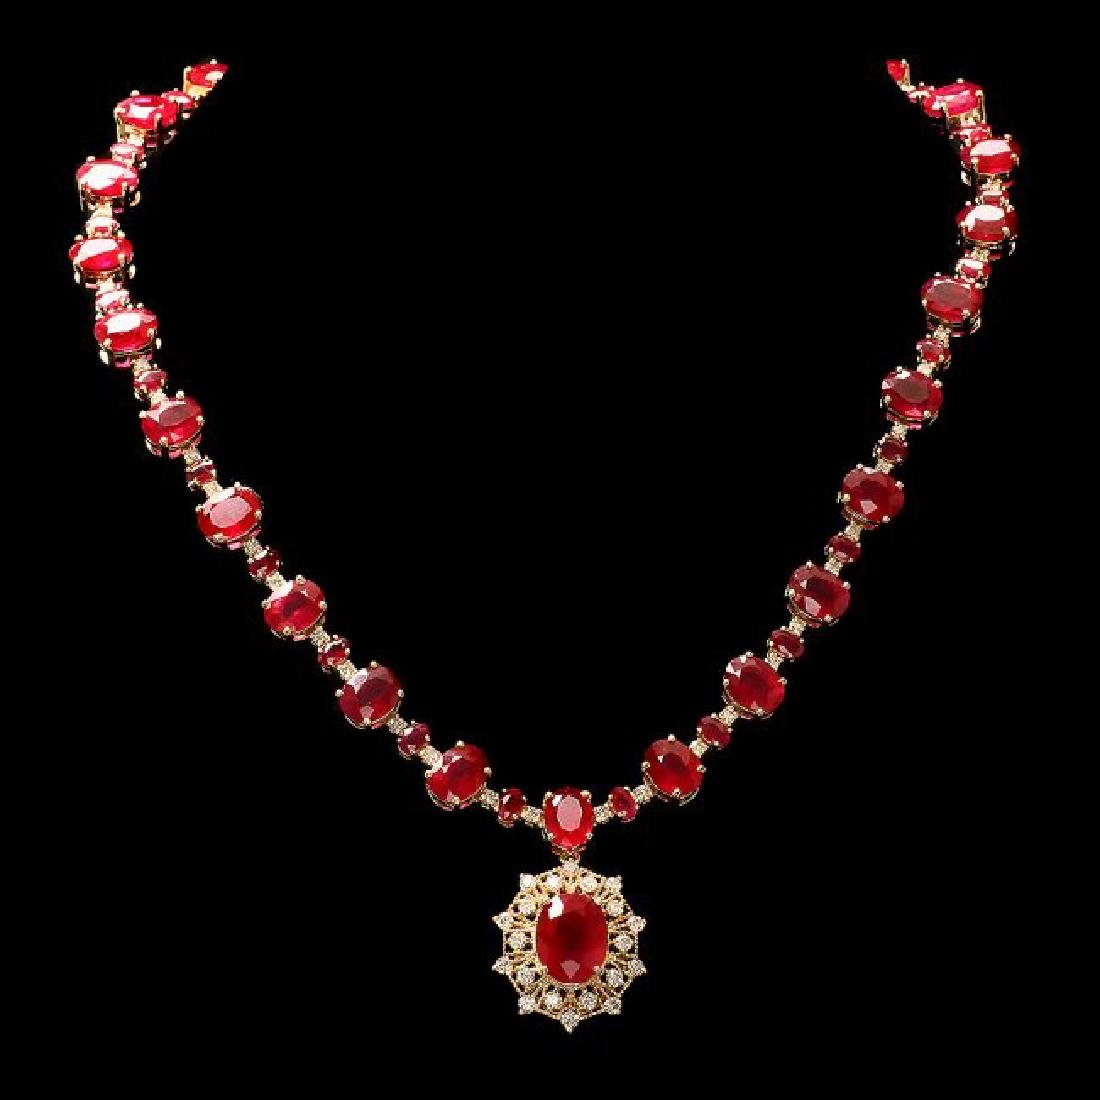 14k Yellow Gold 80ct Ruby 3.00ct Diamond Necklace - 2